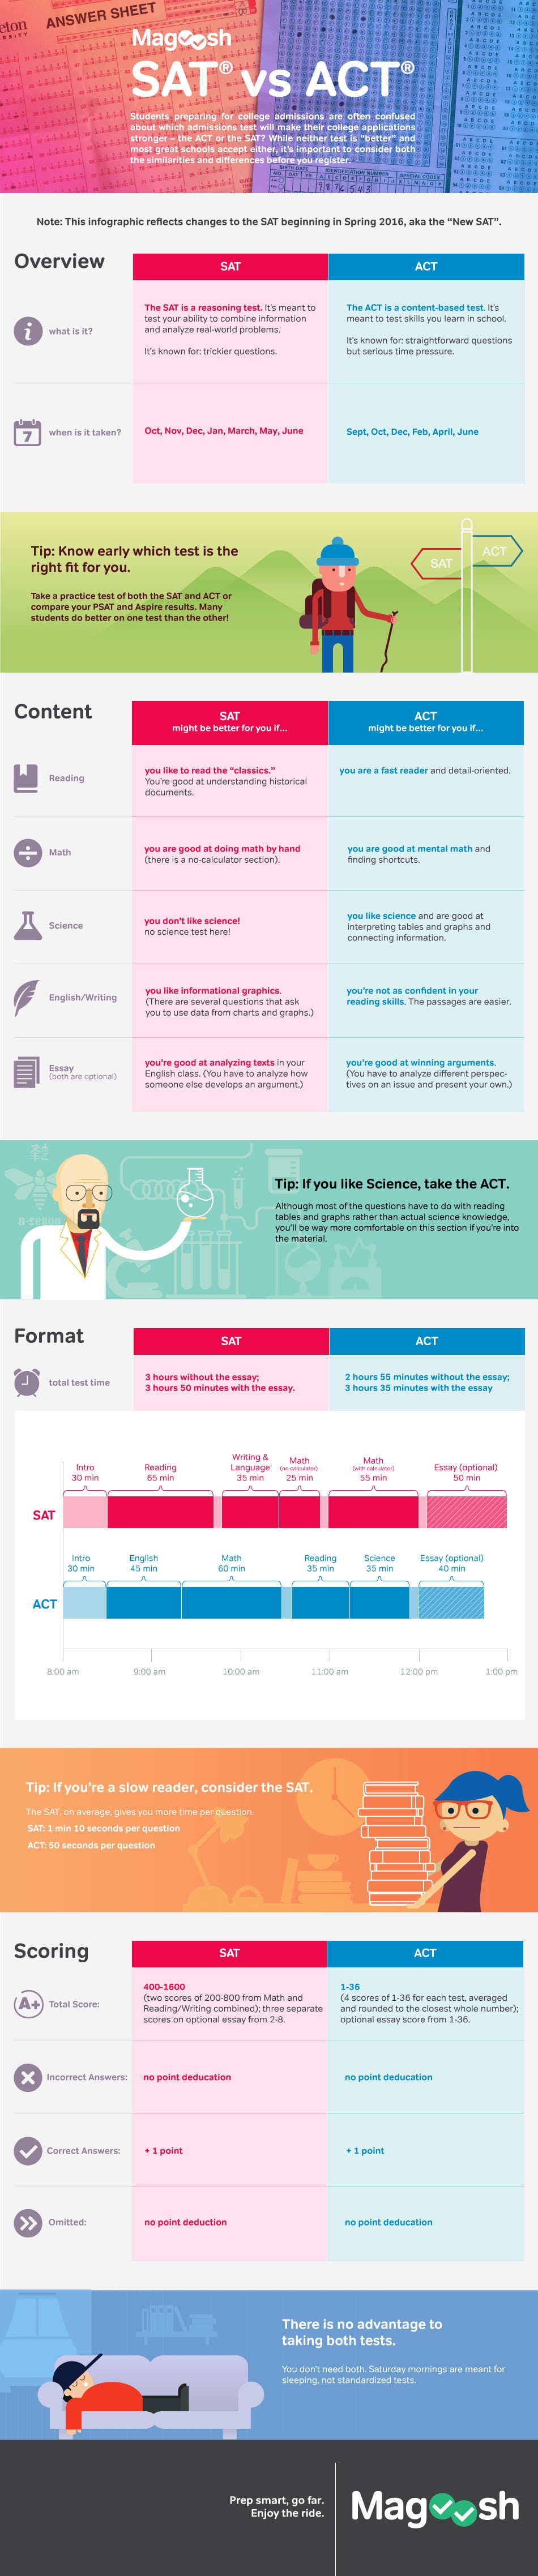 SAT vs ACT - SAT preparation online free infographics - magoosh